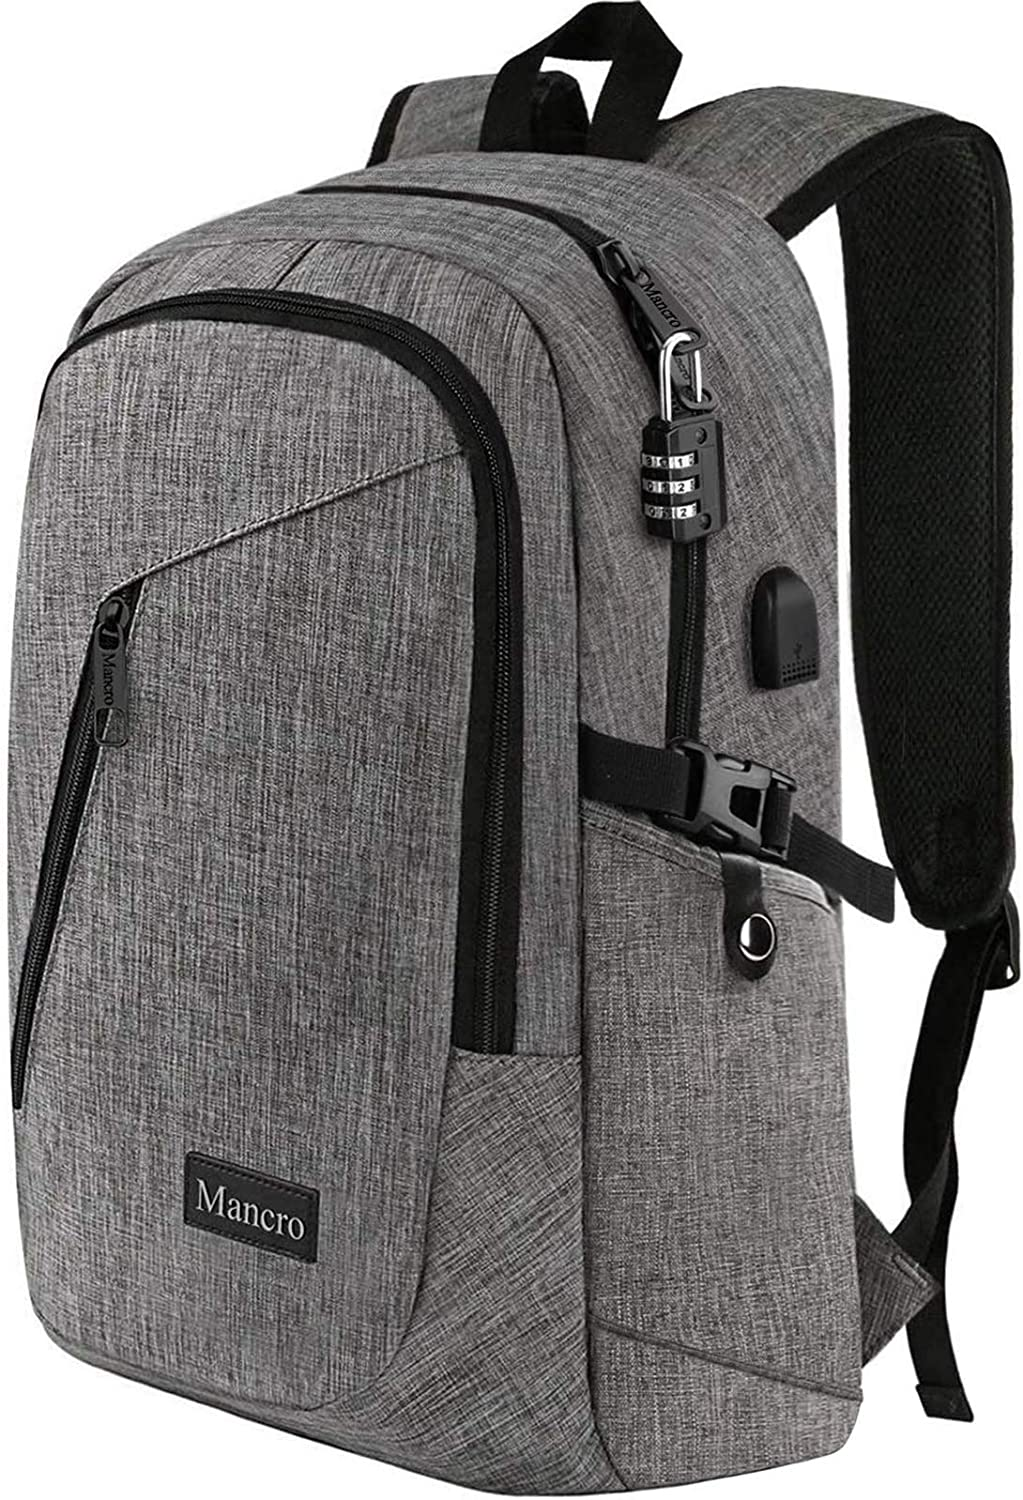 Laptop Backpack, Business Water Resistant Laptops Backpack Gift for Men Women with Lock and USB Charging Port, Mancro Anti Theft College School Bookbag, Travel Computer Bag for 15.6 Inch Laptops,Grey: Computers & Accessories